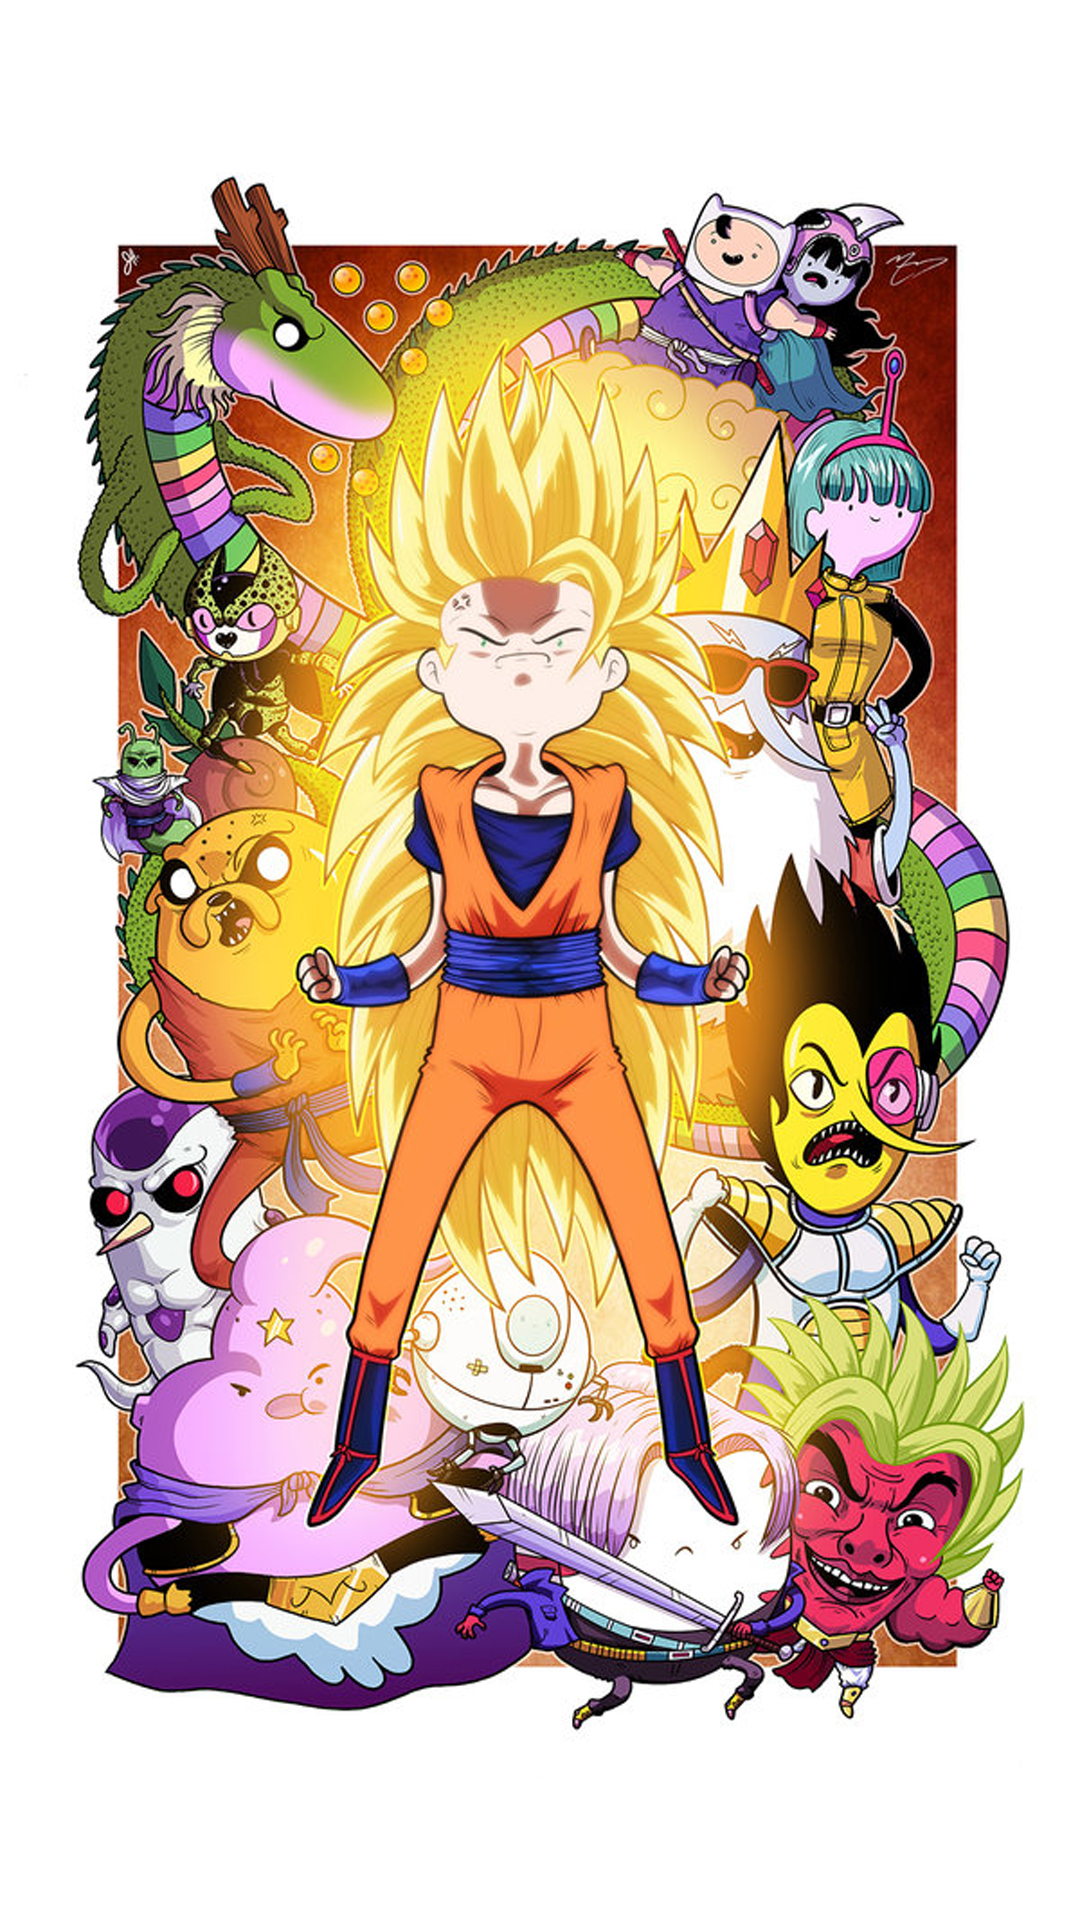 Adventure Time Iphone Wallpaper - Crossover Dragon Ball , HD Wallpaper & Backgrounds